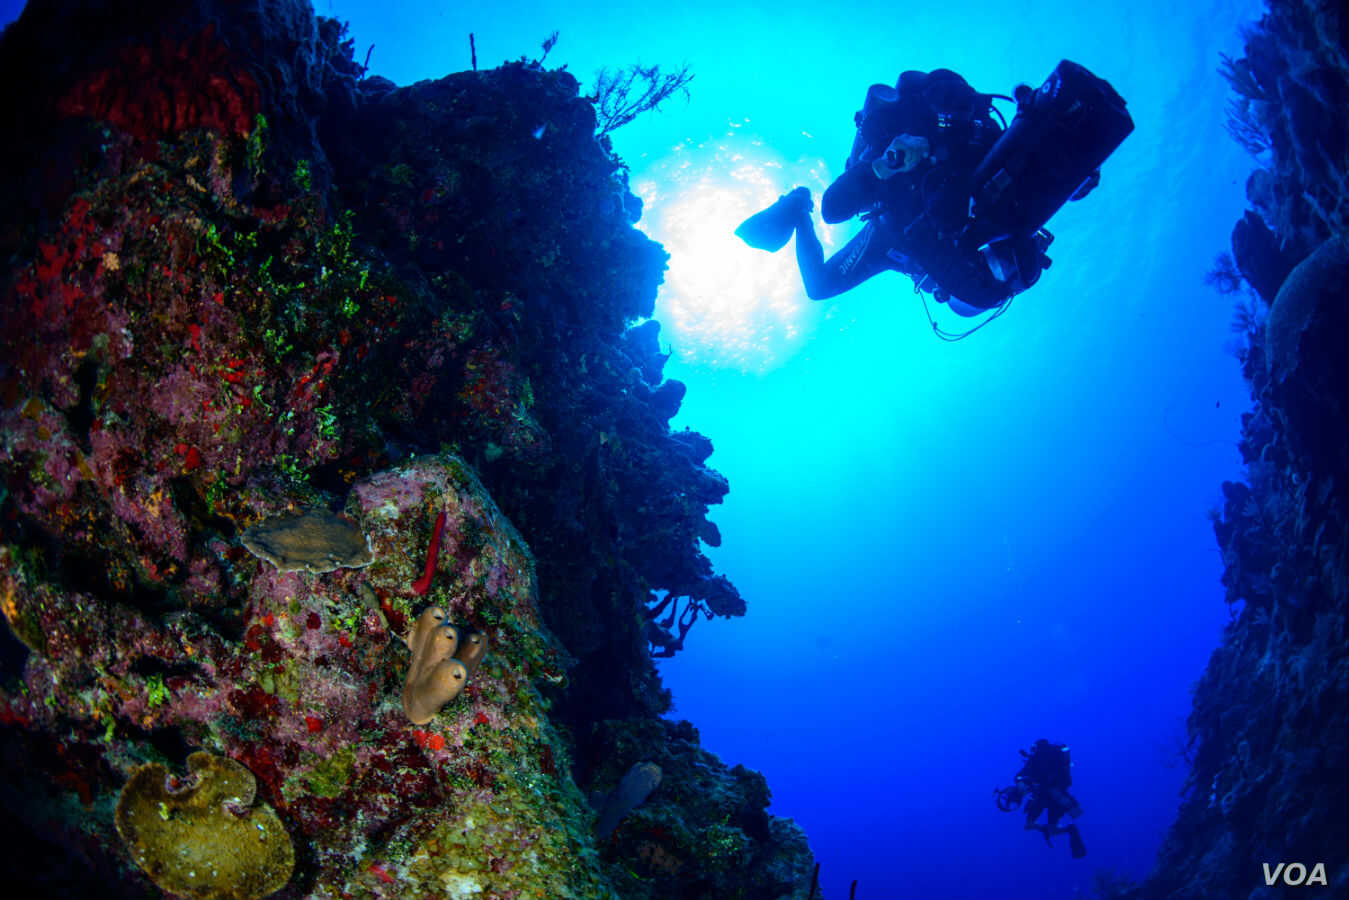 """Bart Shepherd dives into the """"twilight zone,"""" deep, dimly lit reefs 60-150 meters beneath the surface. He and Luiz Rocha are some of the only scientists trained to explore at these depths."""